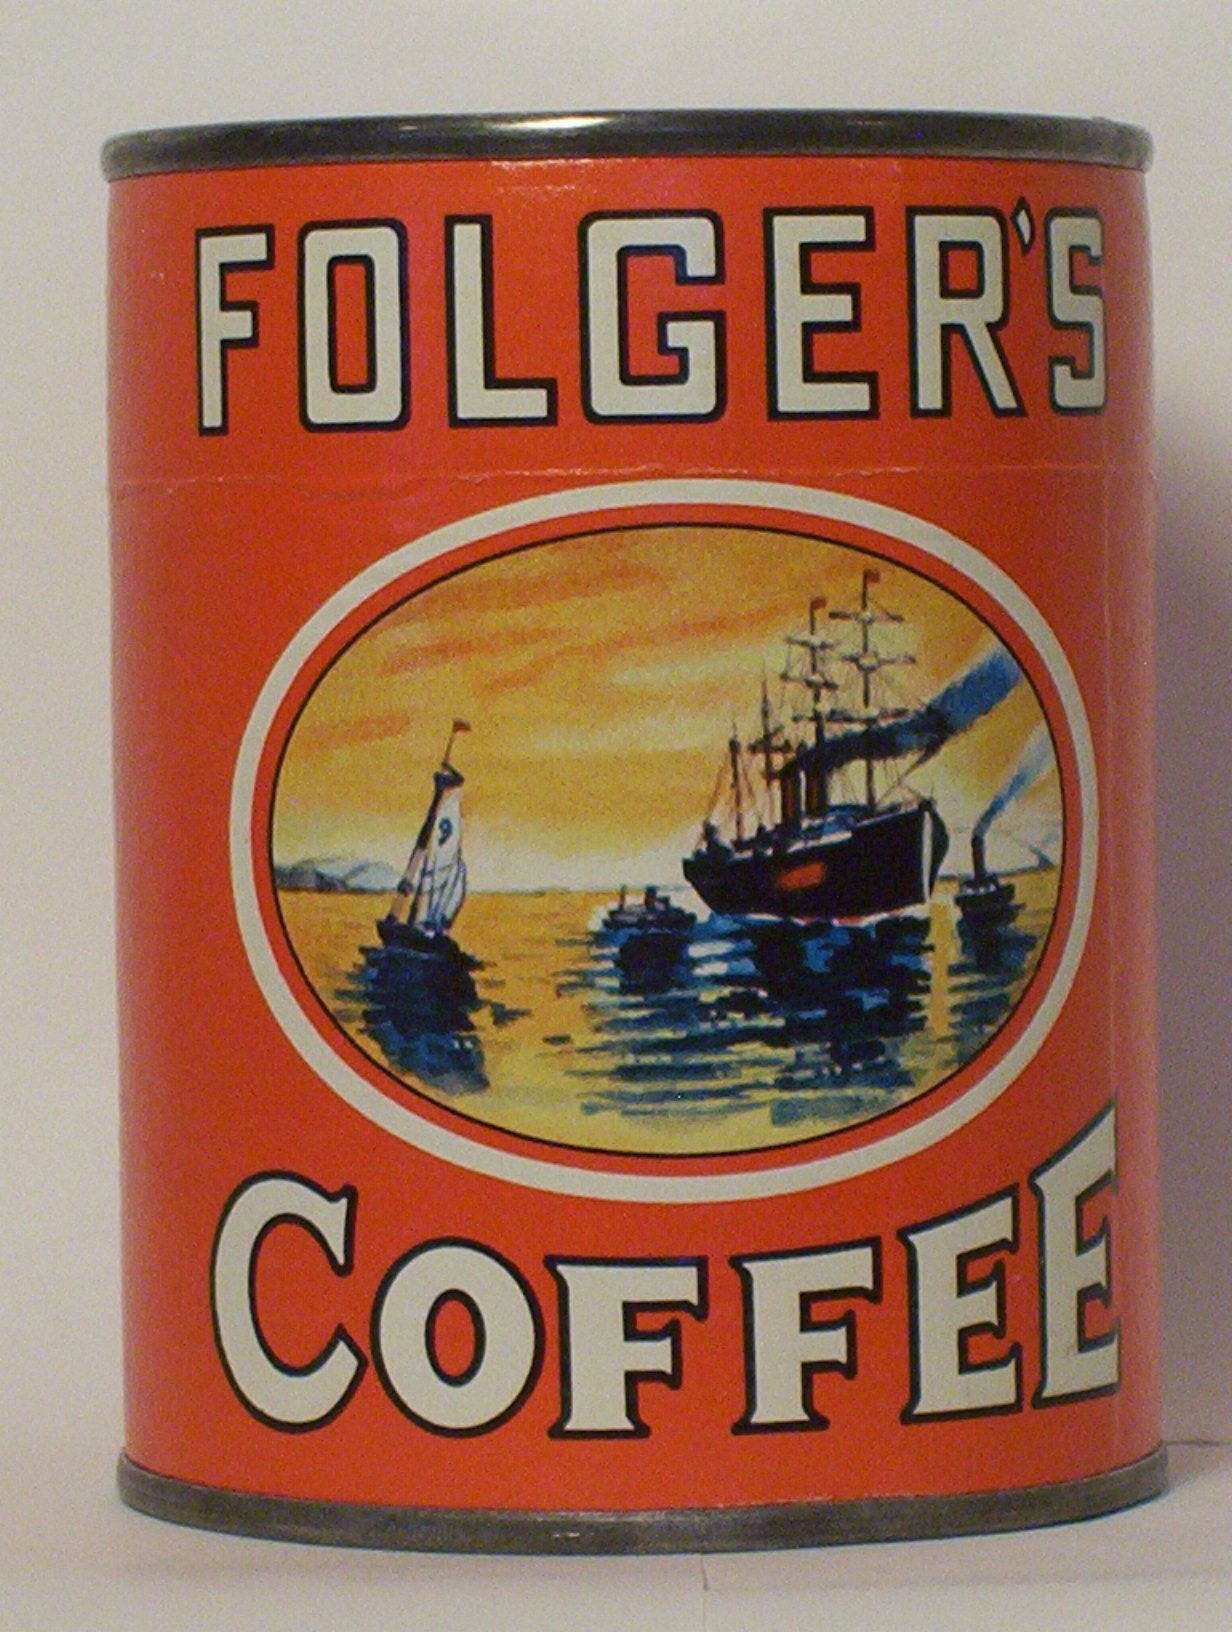 1000 images about coffee branding coffee roasting 1000 images about coffee branding coffee roasting coffee tattoos and tins